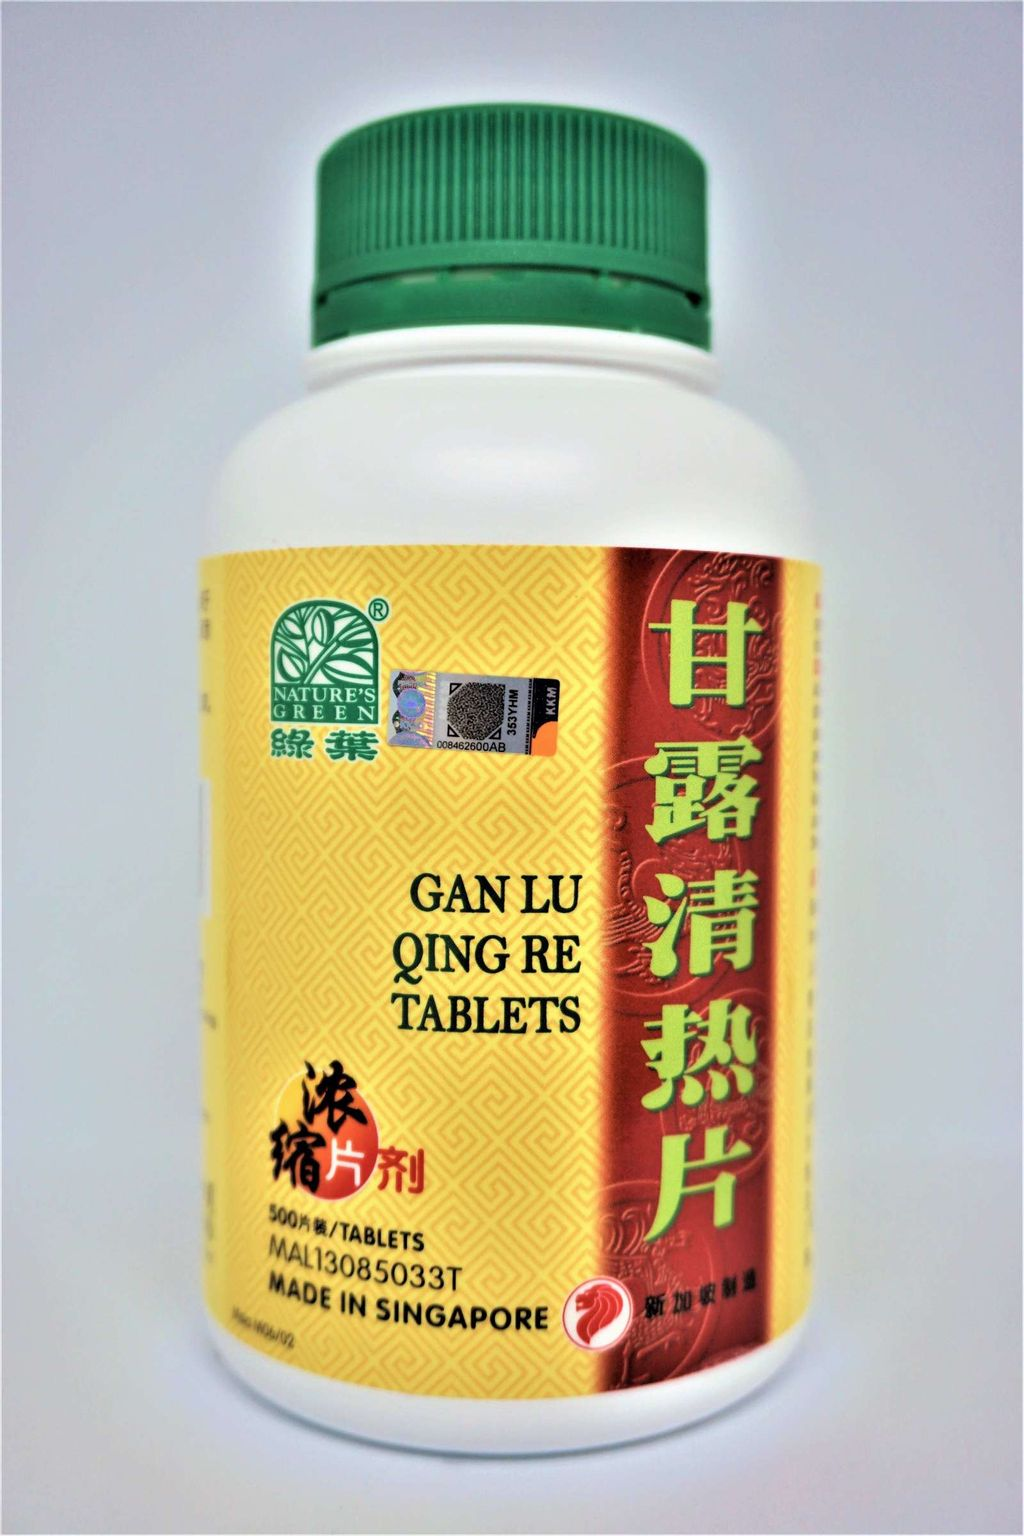 traditional-chinese-medicine-herbs-product.JPG